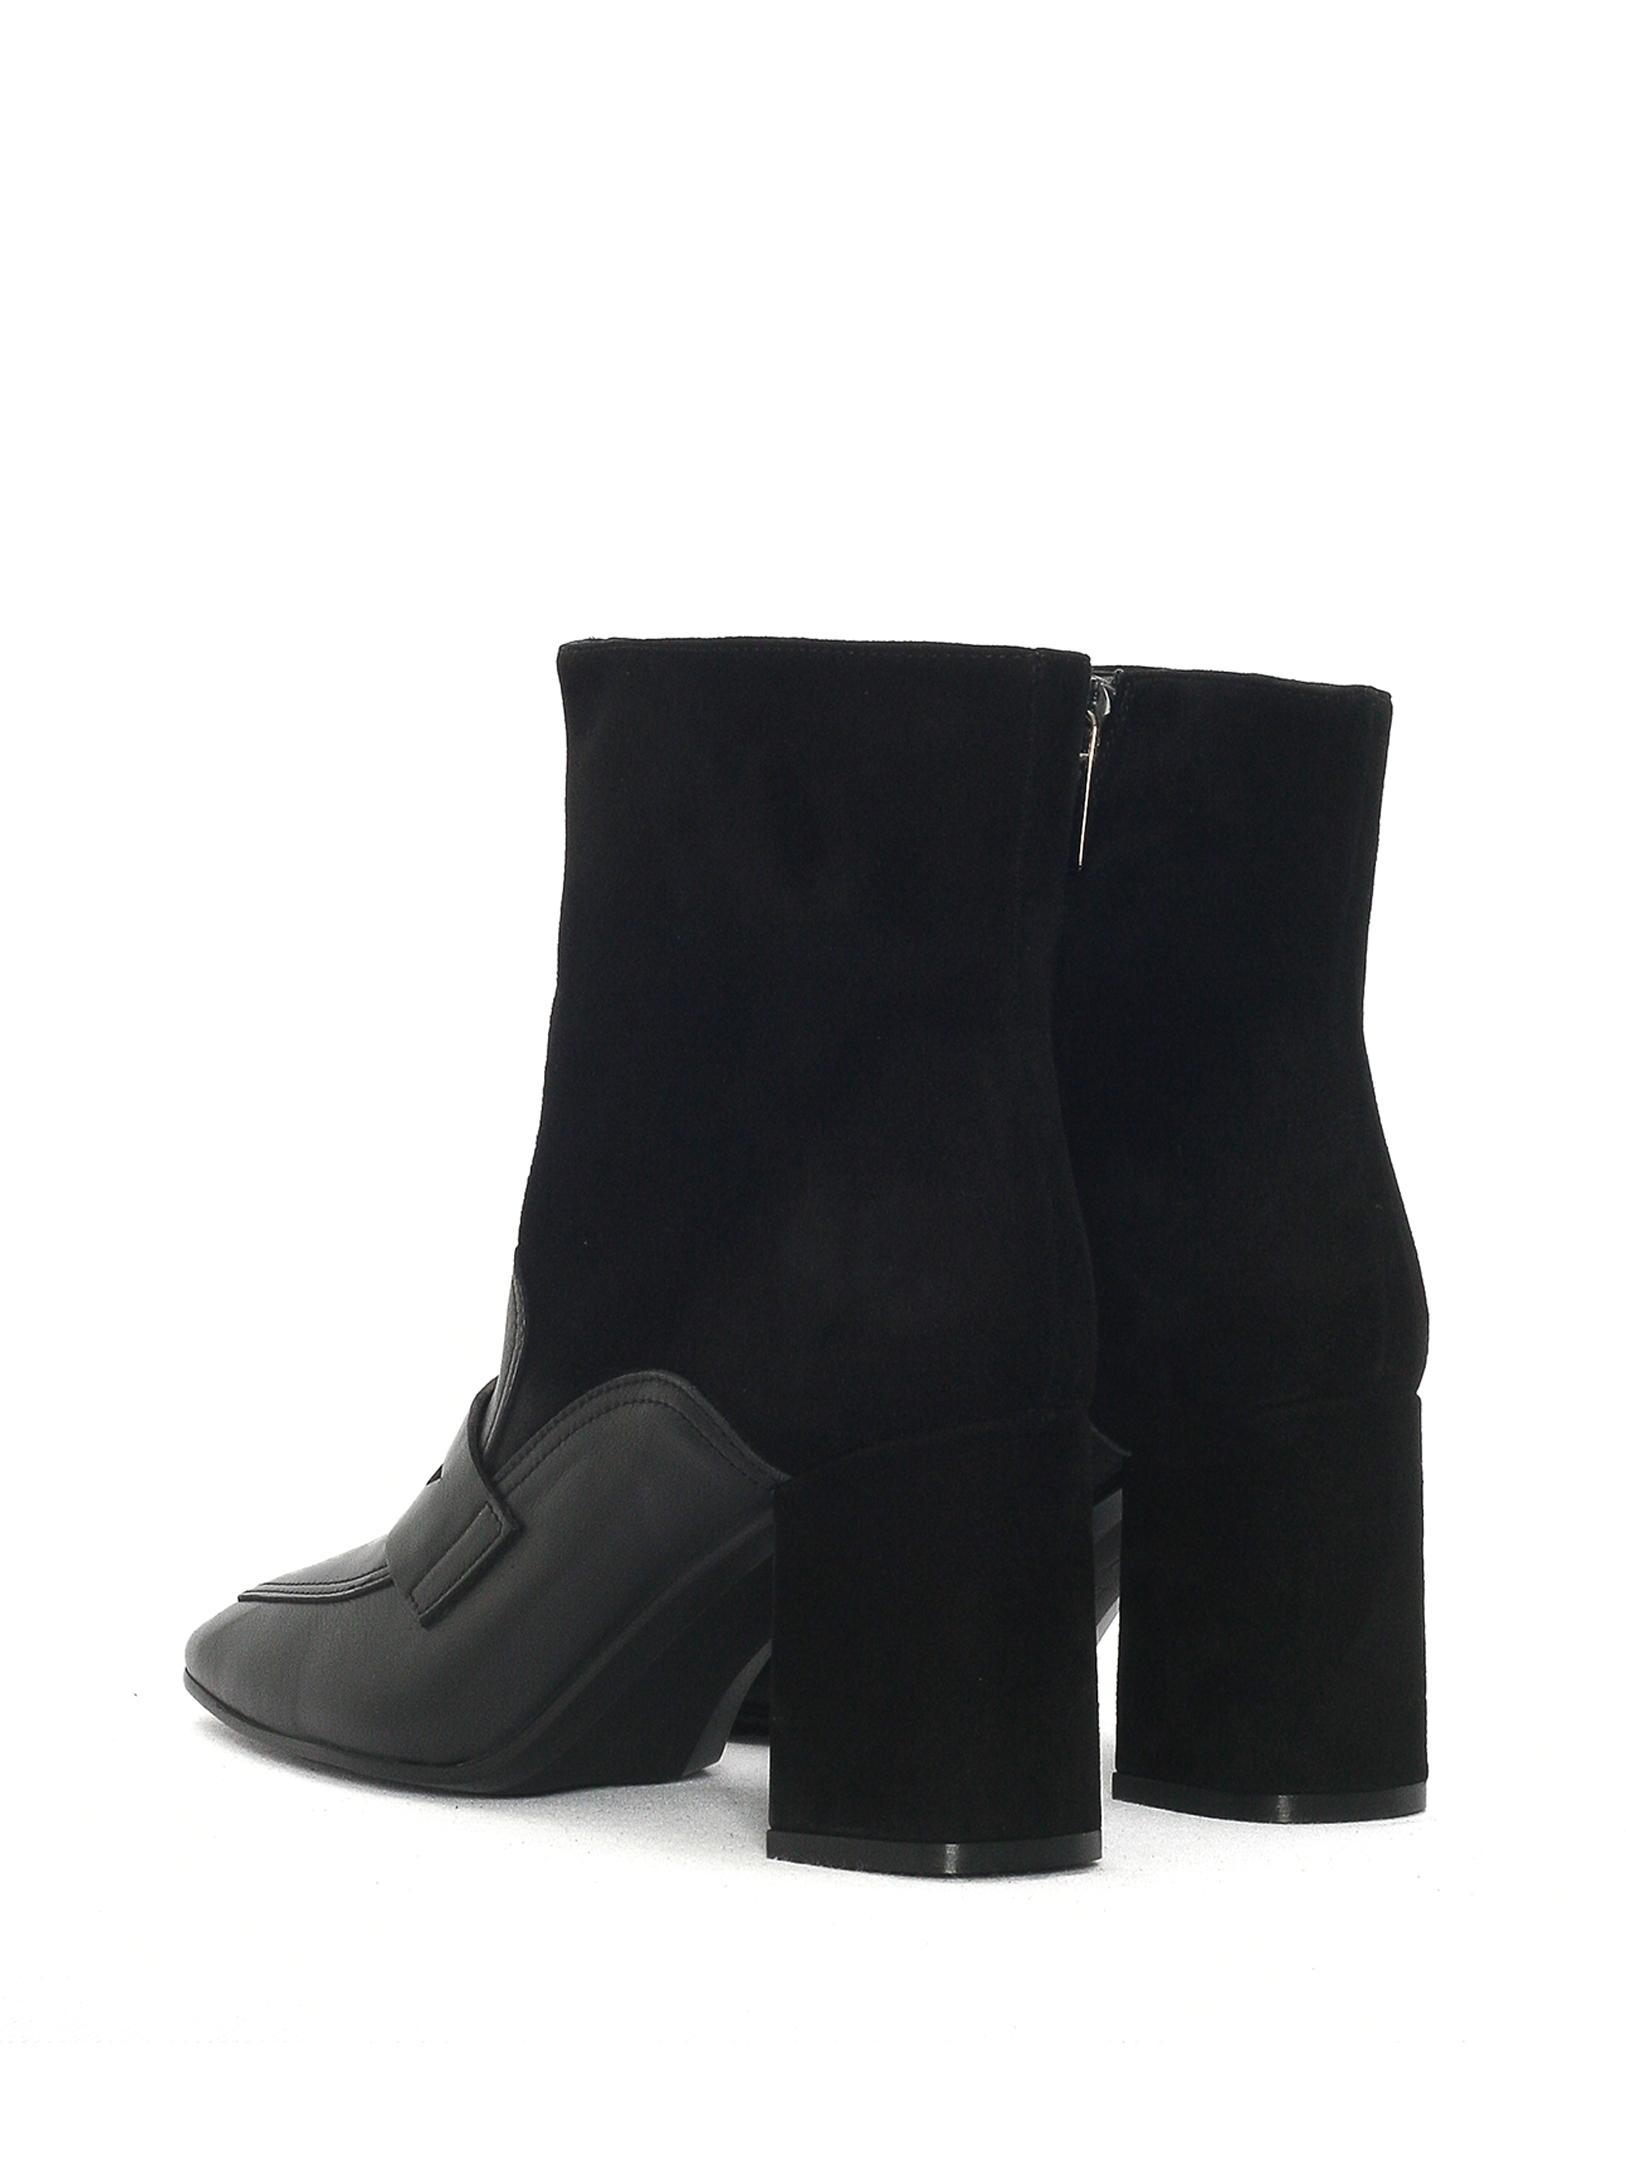 VIANNA BLACK NAPA-SUEDE ANKLE BOOT